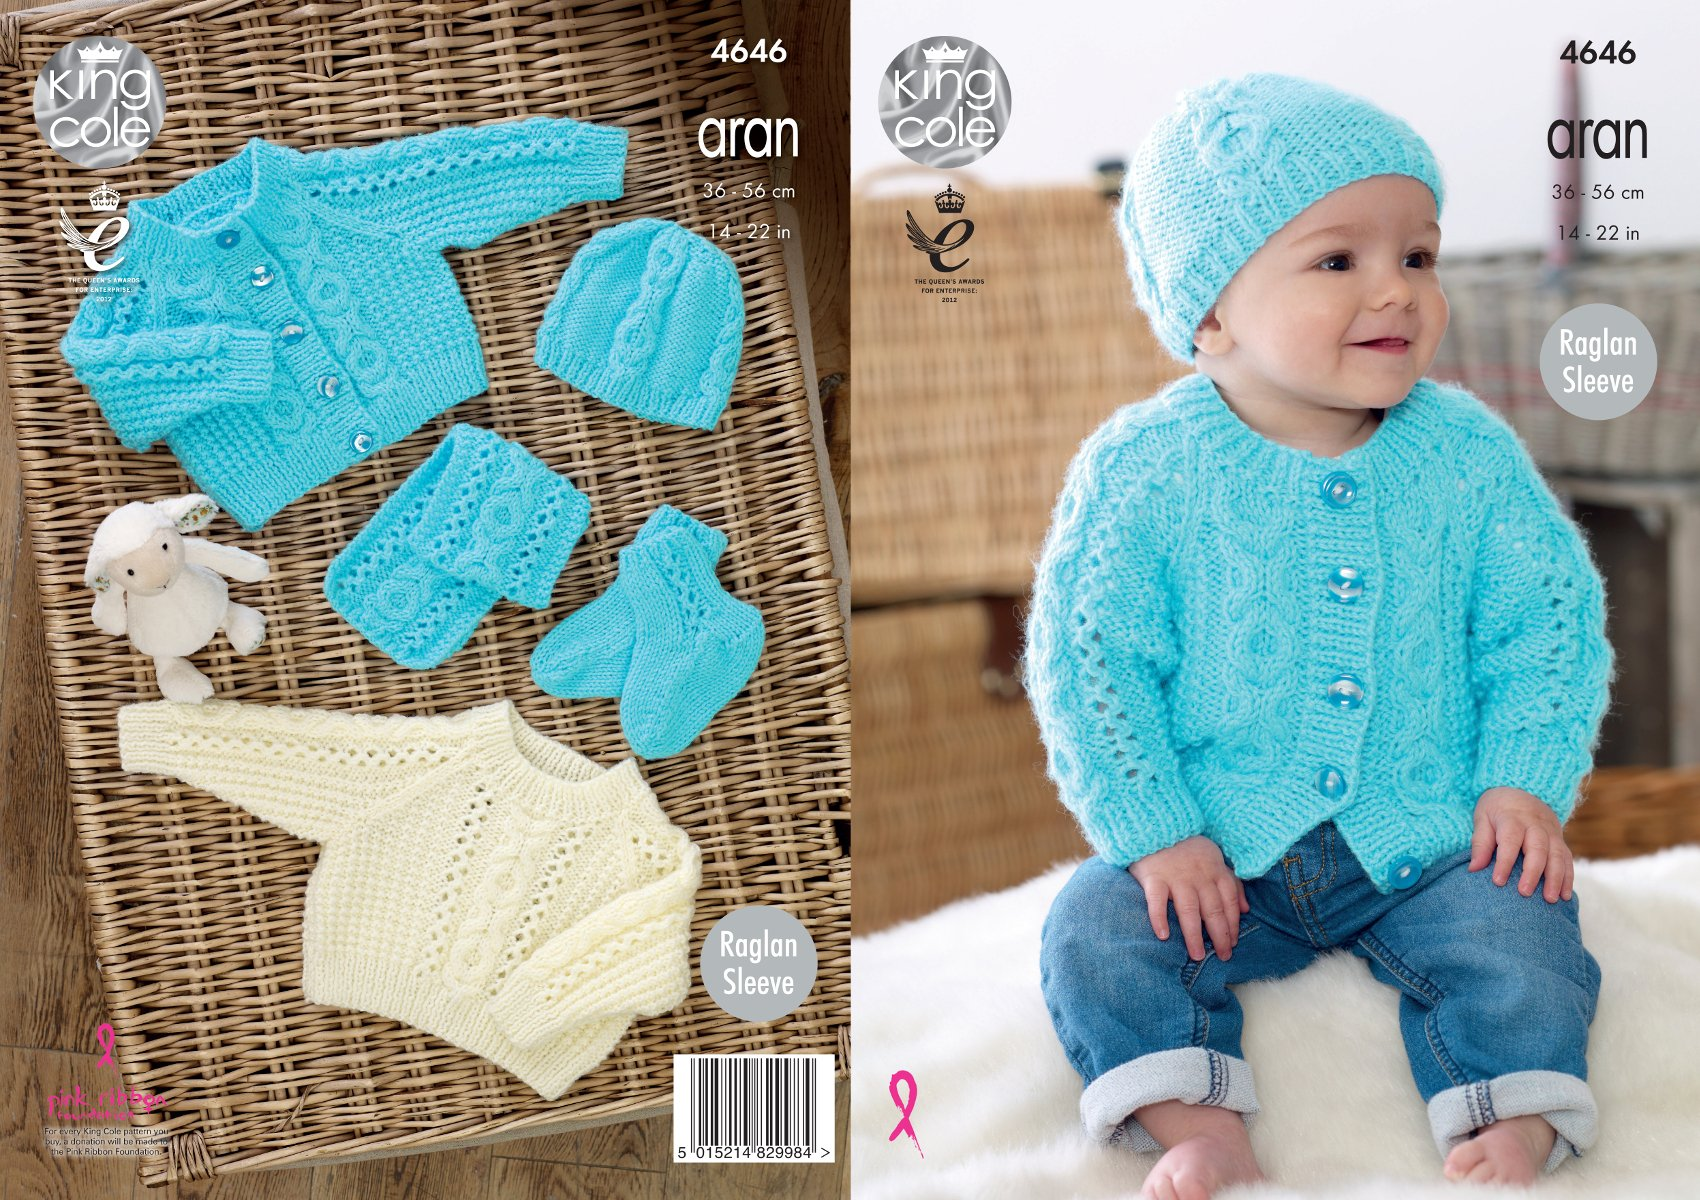 Cabled Raglan Baby Sweater Pattern - Sewing Patterns for Baby